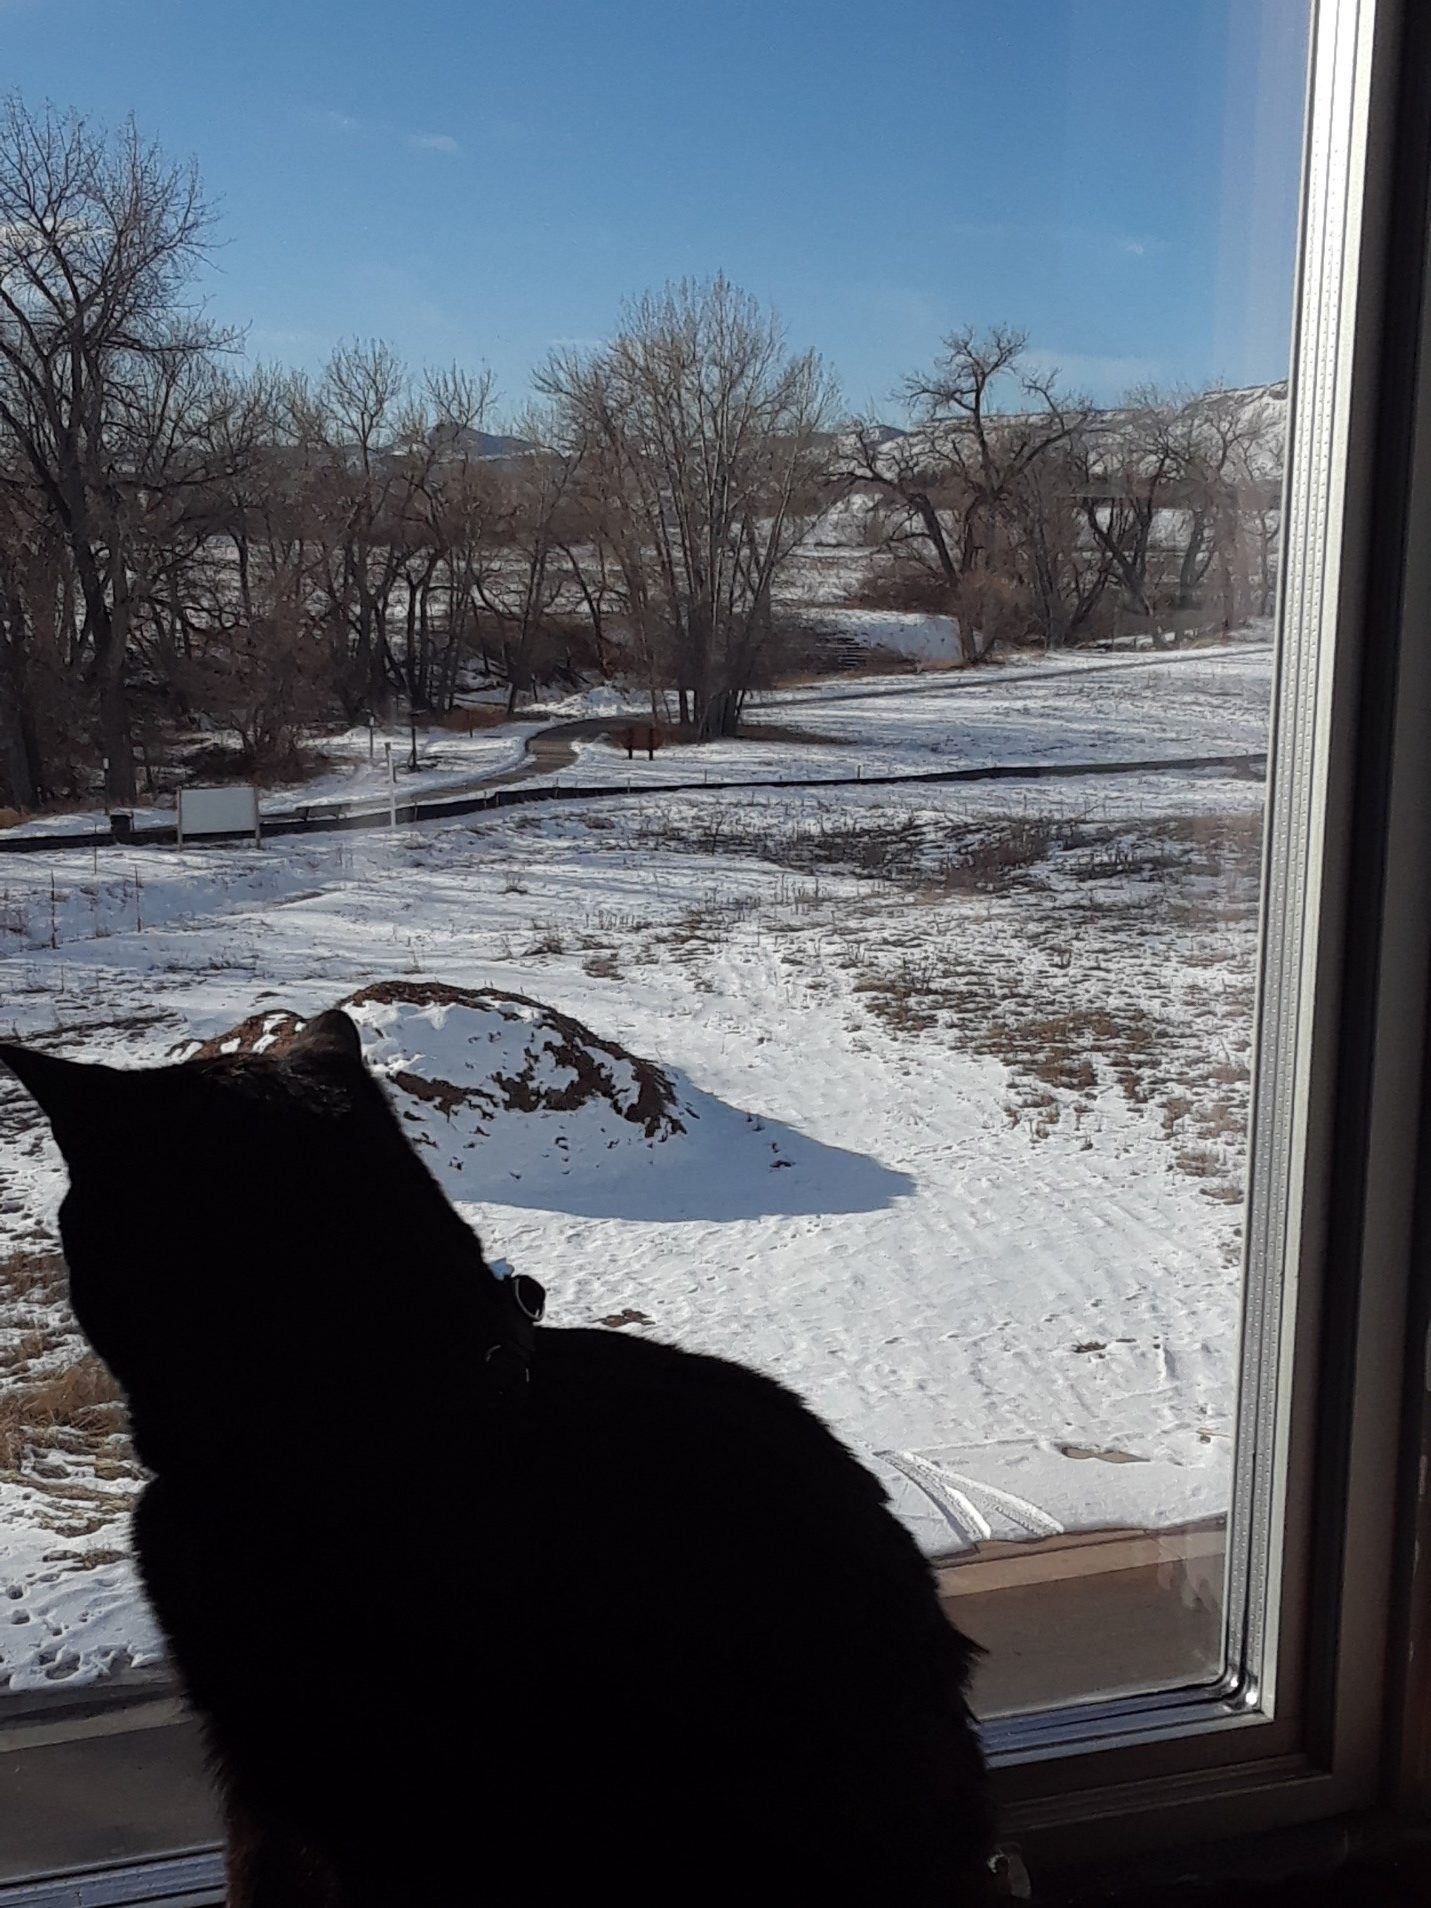 The cats enjoy the southern view from my new home office. This is about the same view we'll enjoy from the Gatehouse when it is built.